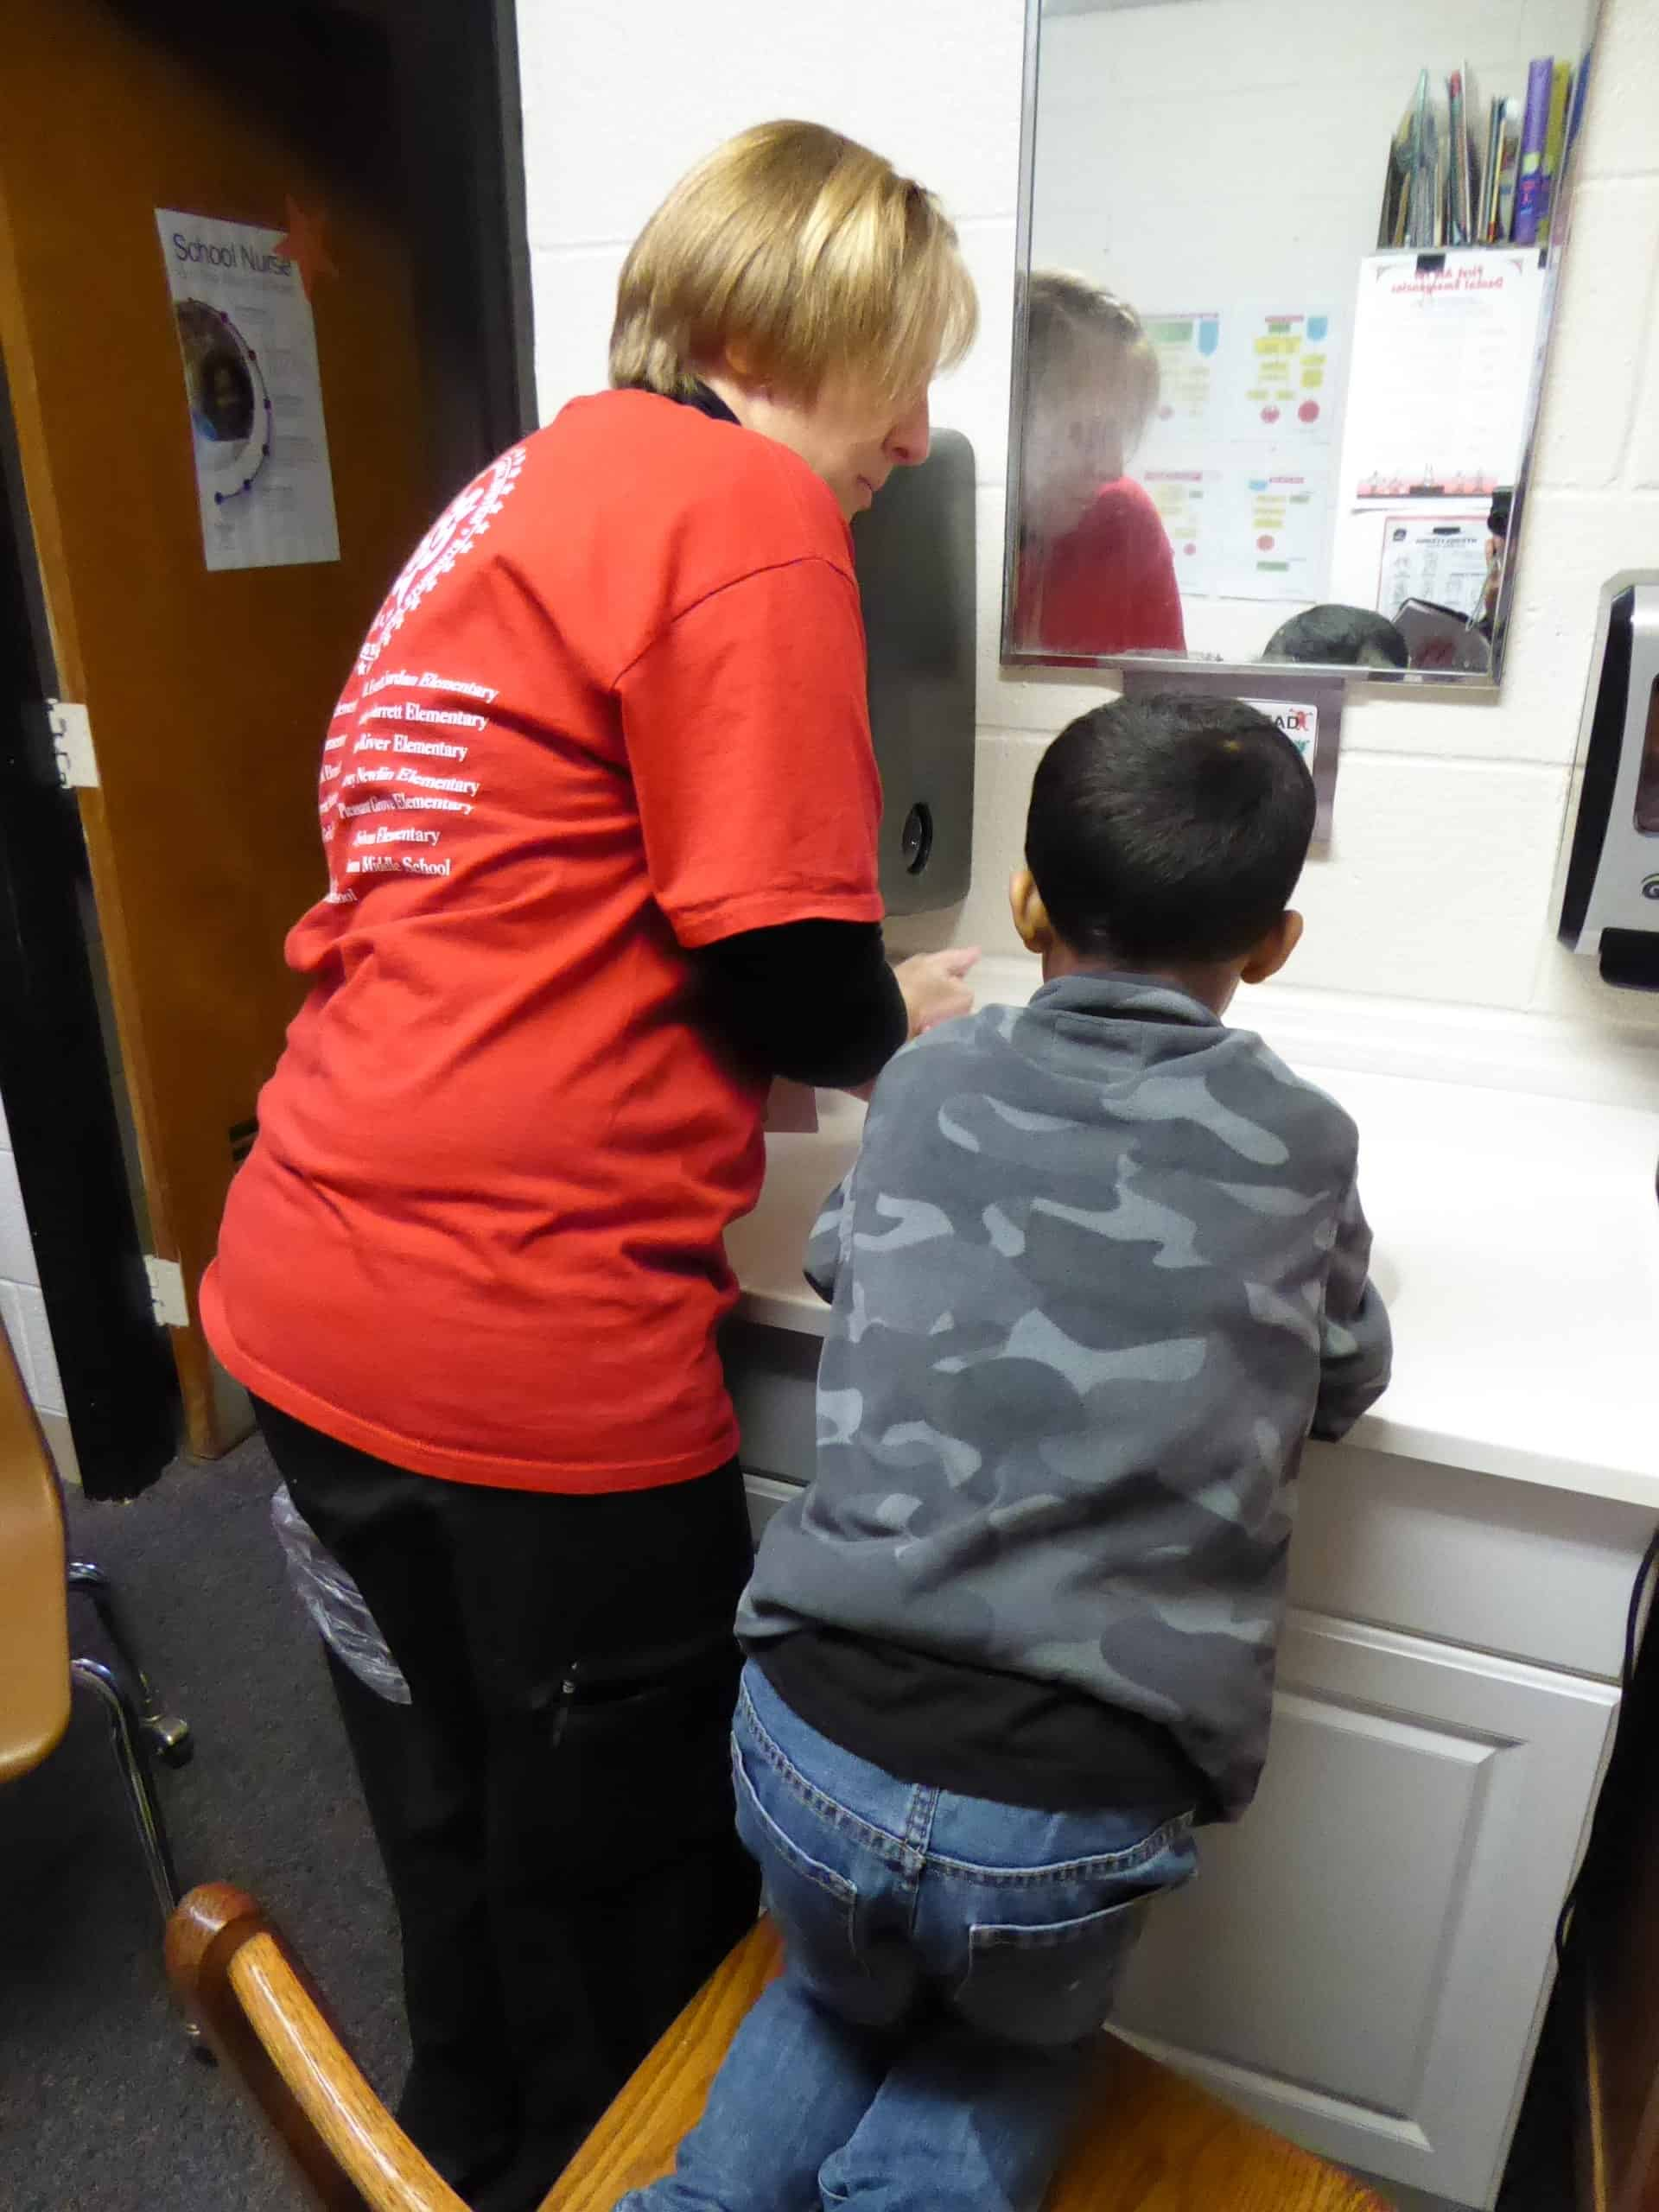 The school nurse stands at the sink with a little boy, they're washing their hands together.